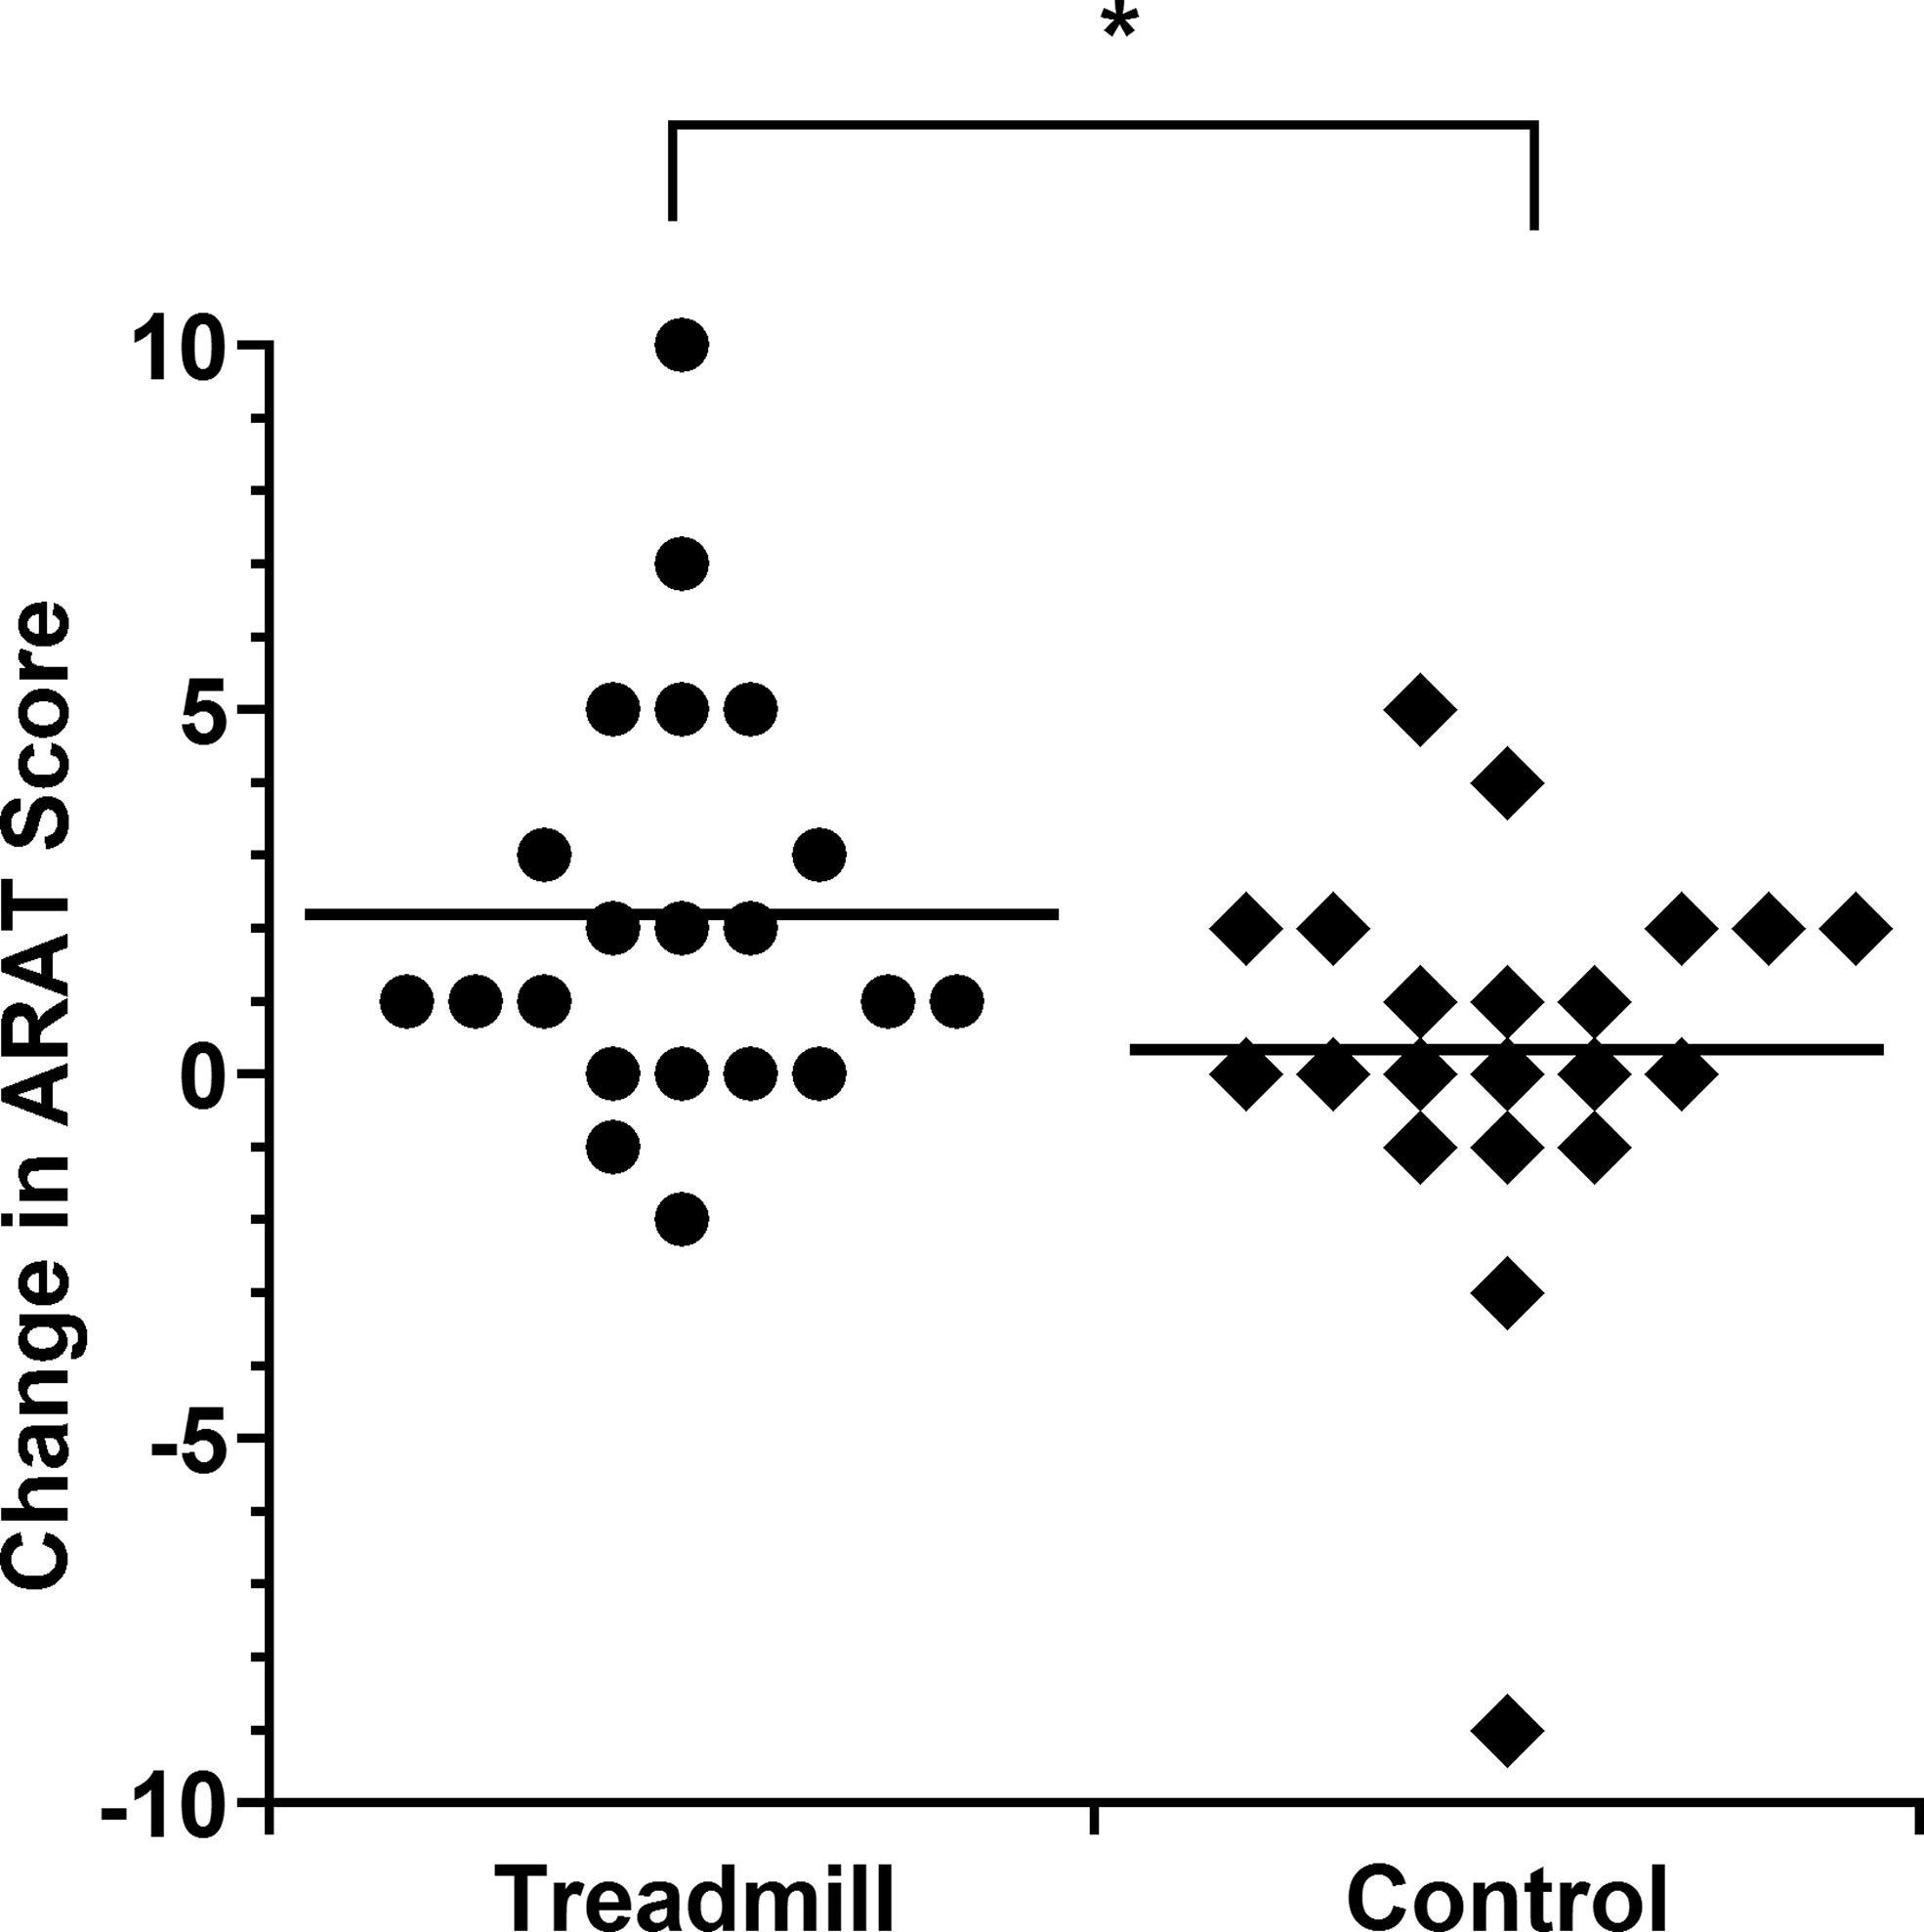 Does Treadmill Exercise Improve Performance of Cognitive